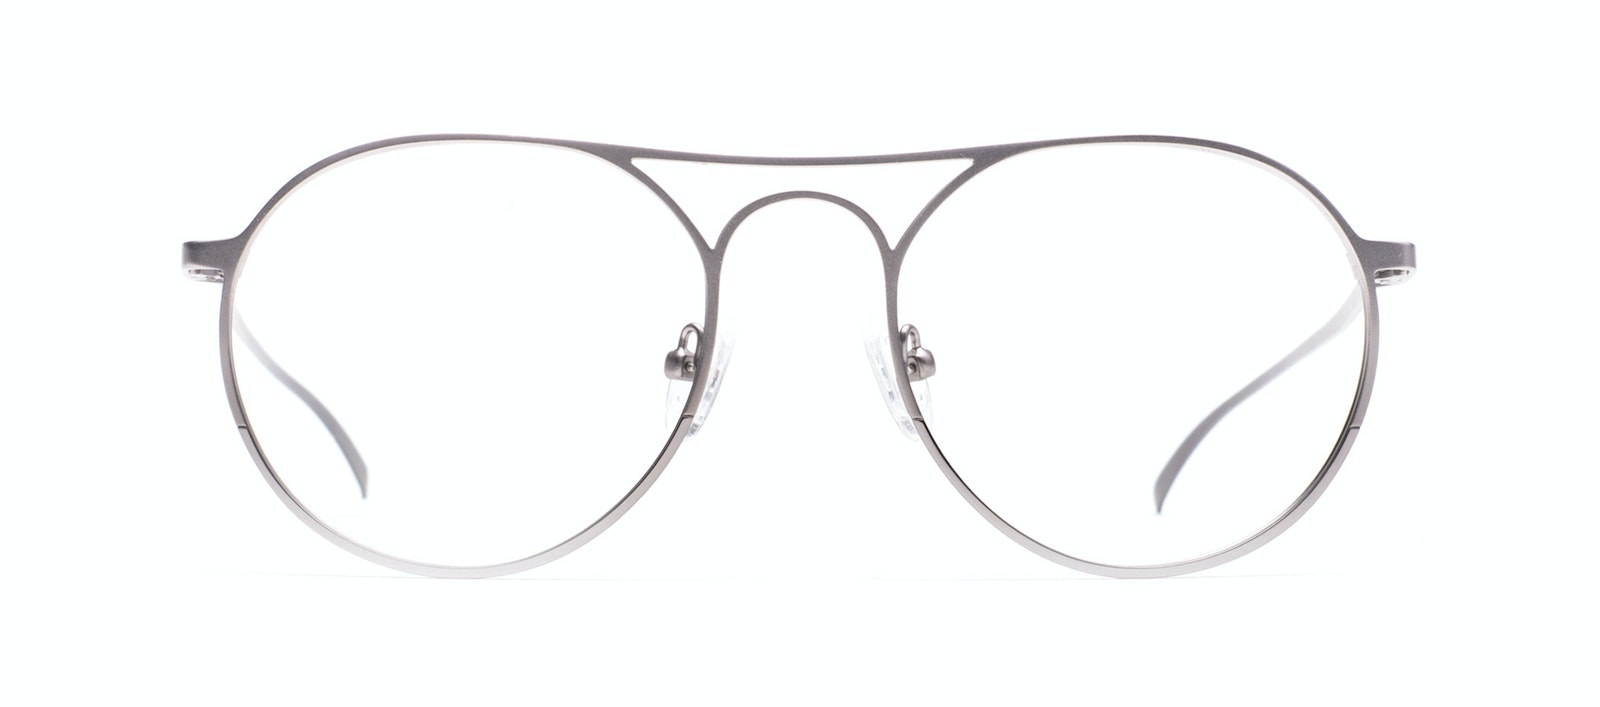 1e57d73852a0 Affordable Fashion Glasses Aviator Round Eyeglasses Men Contour Silver Front